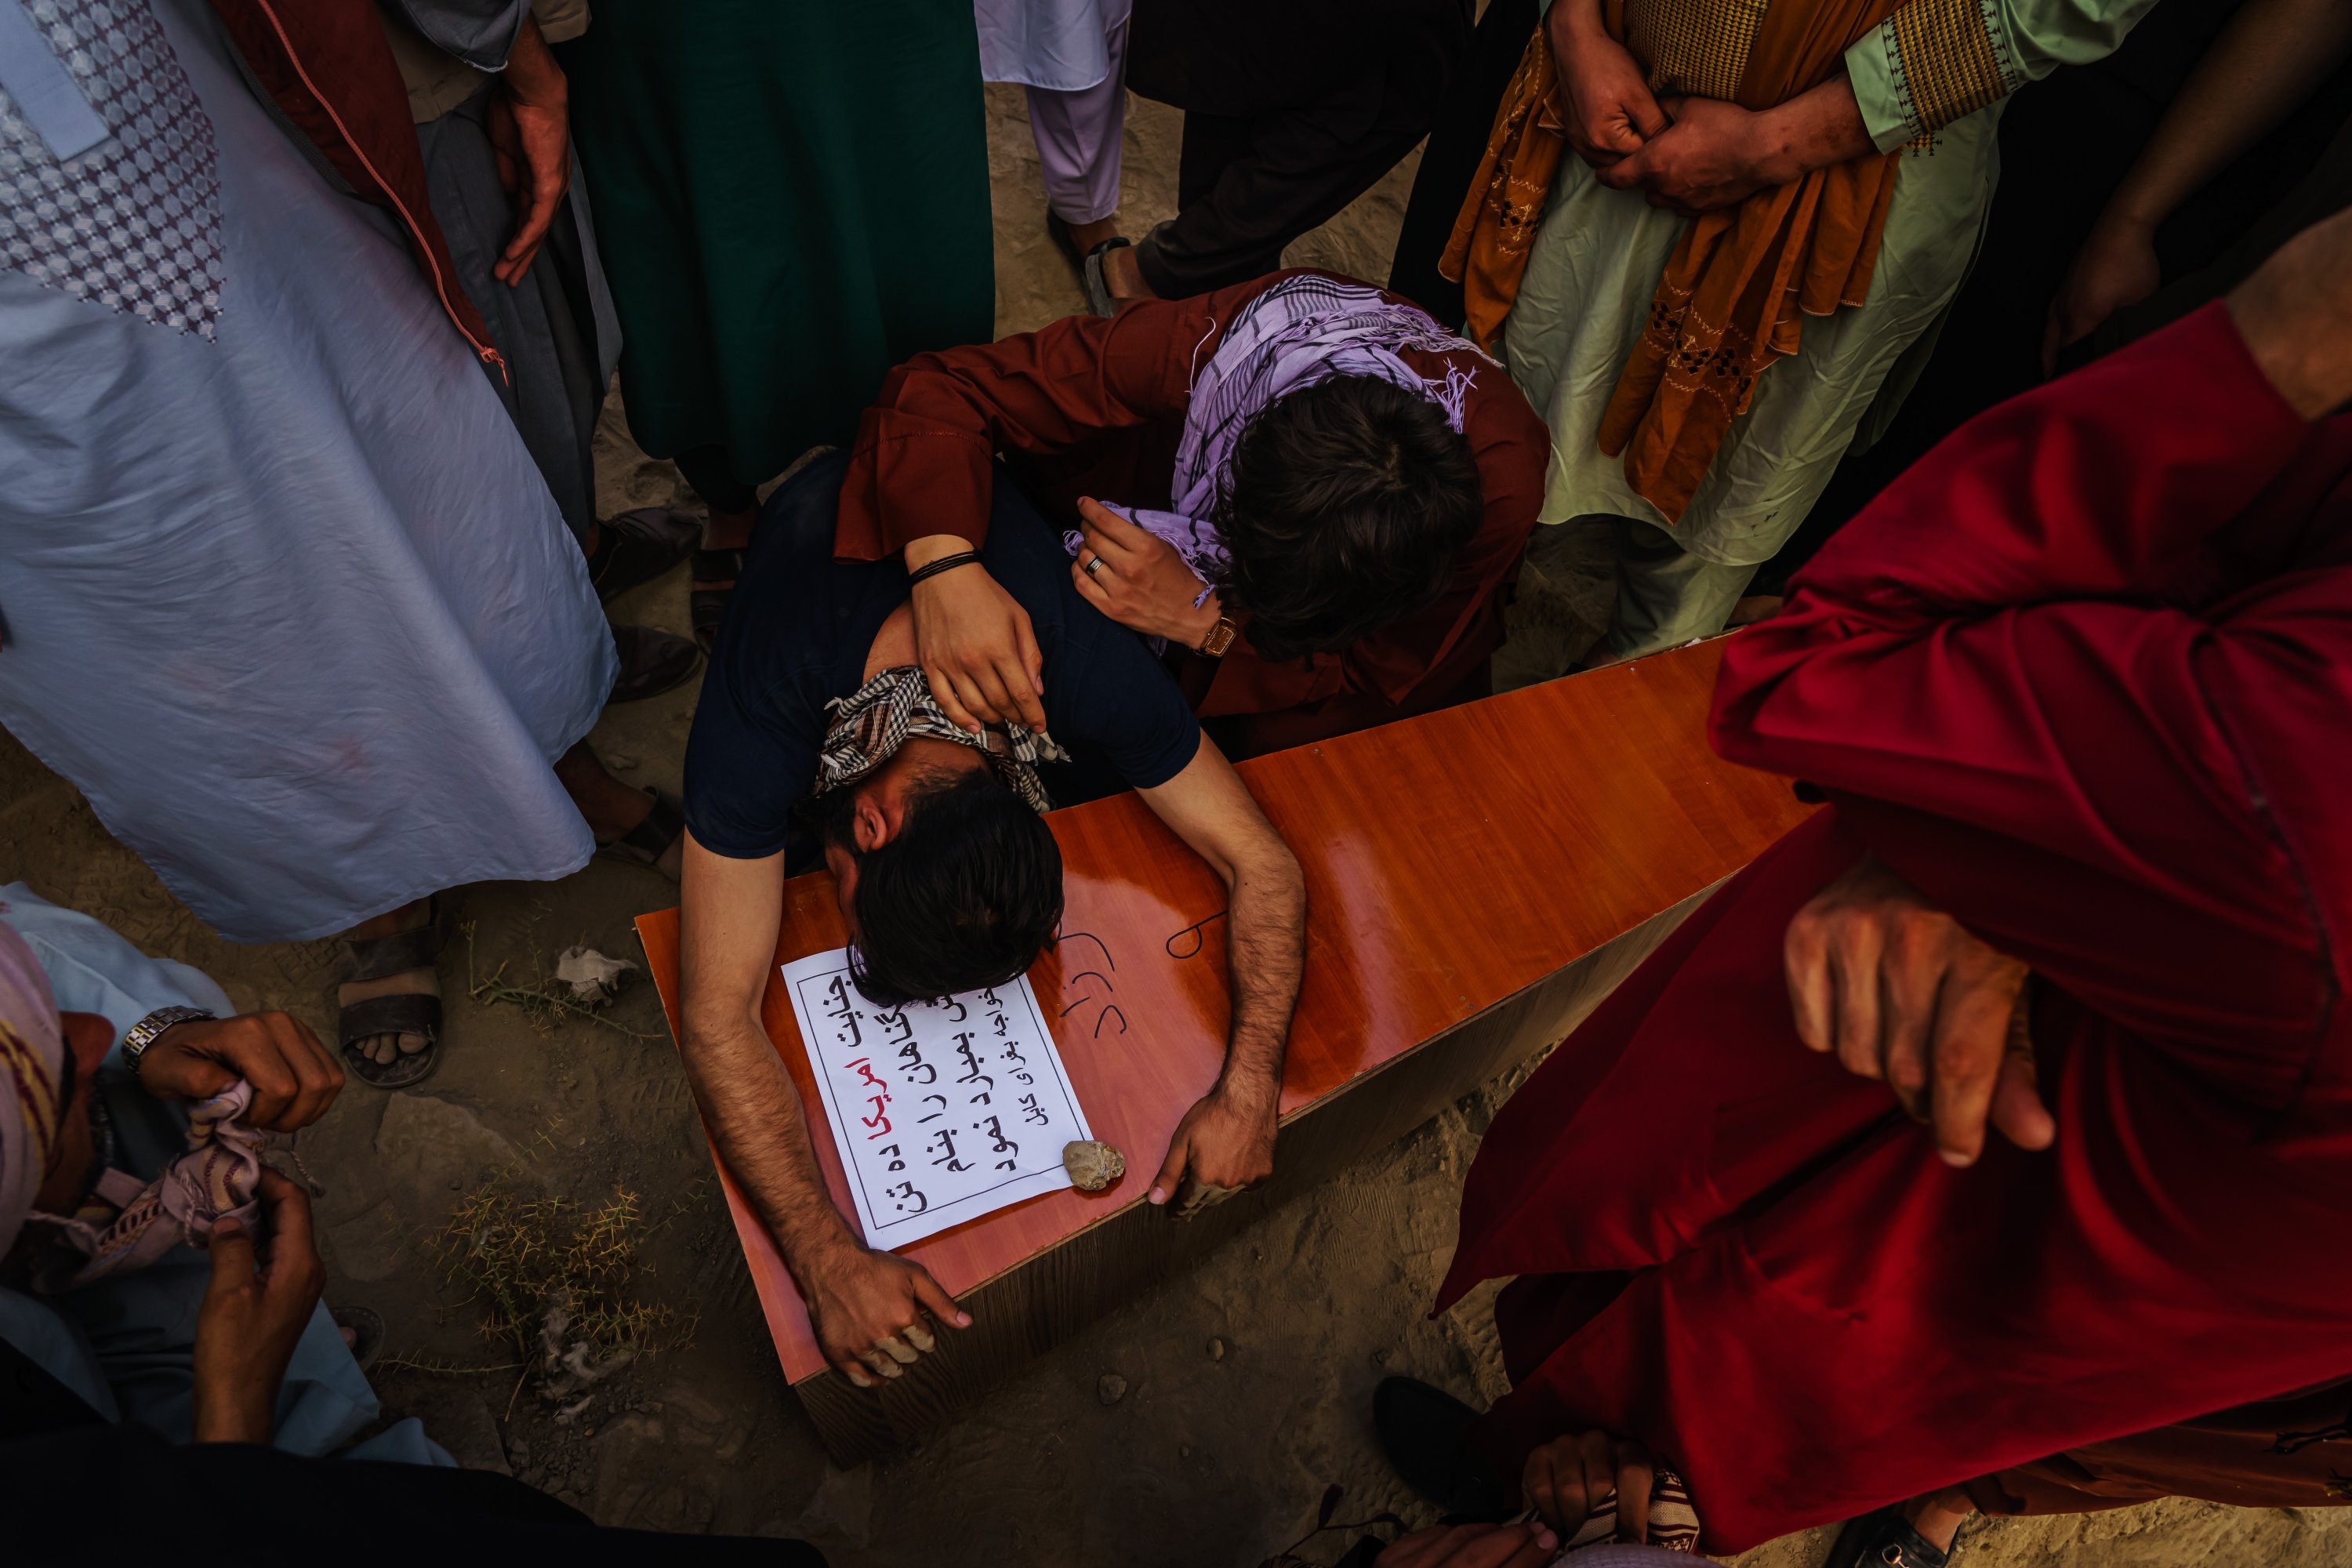 A relative weeps over the casket of Farzad, 12, who was killed by U.S. drone airstrikes, Kabul, Afghanistan, Aug. 30, 2021. (Getty Images)